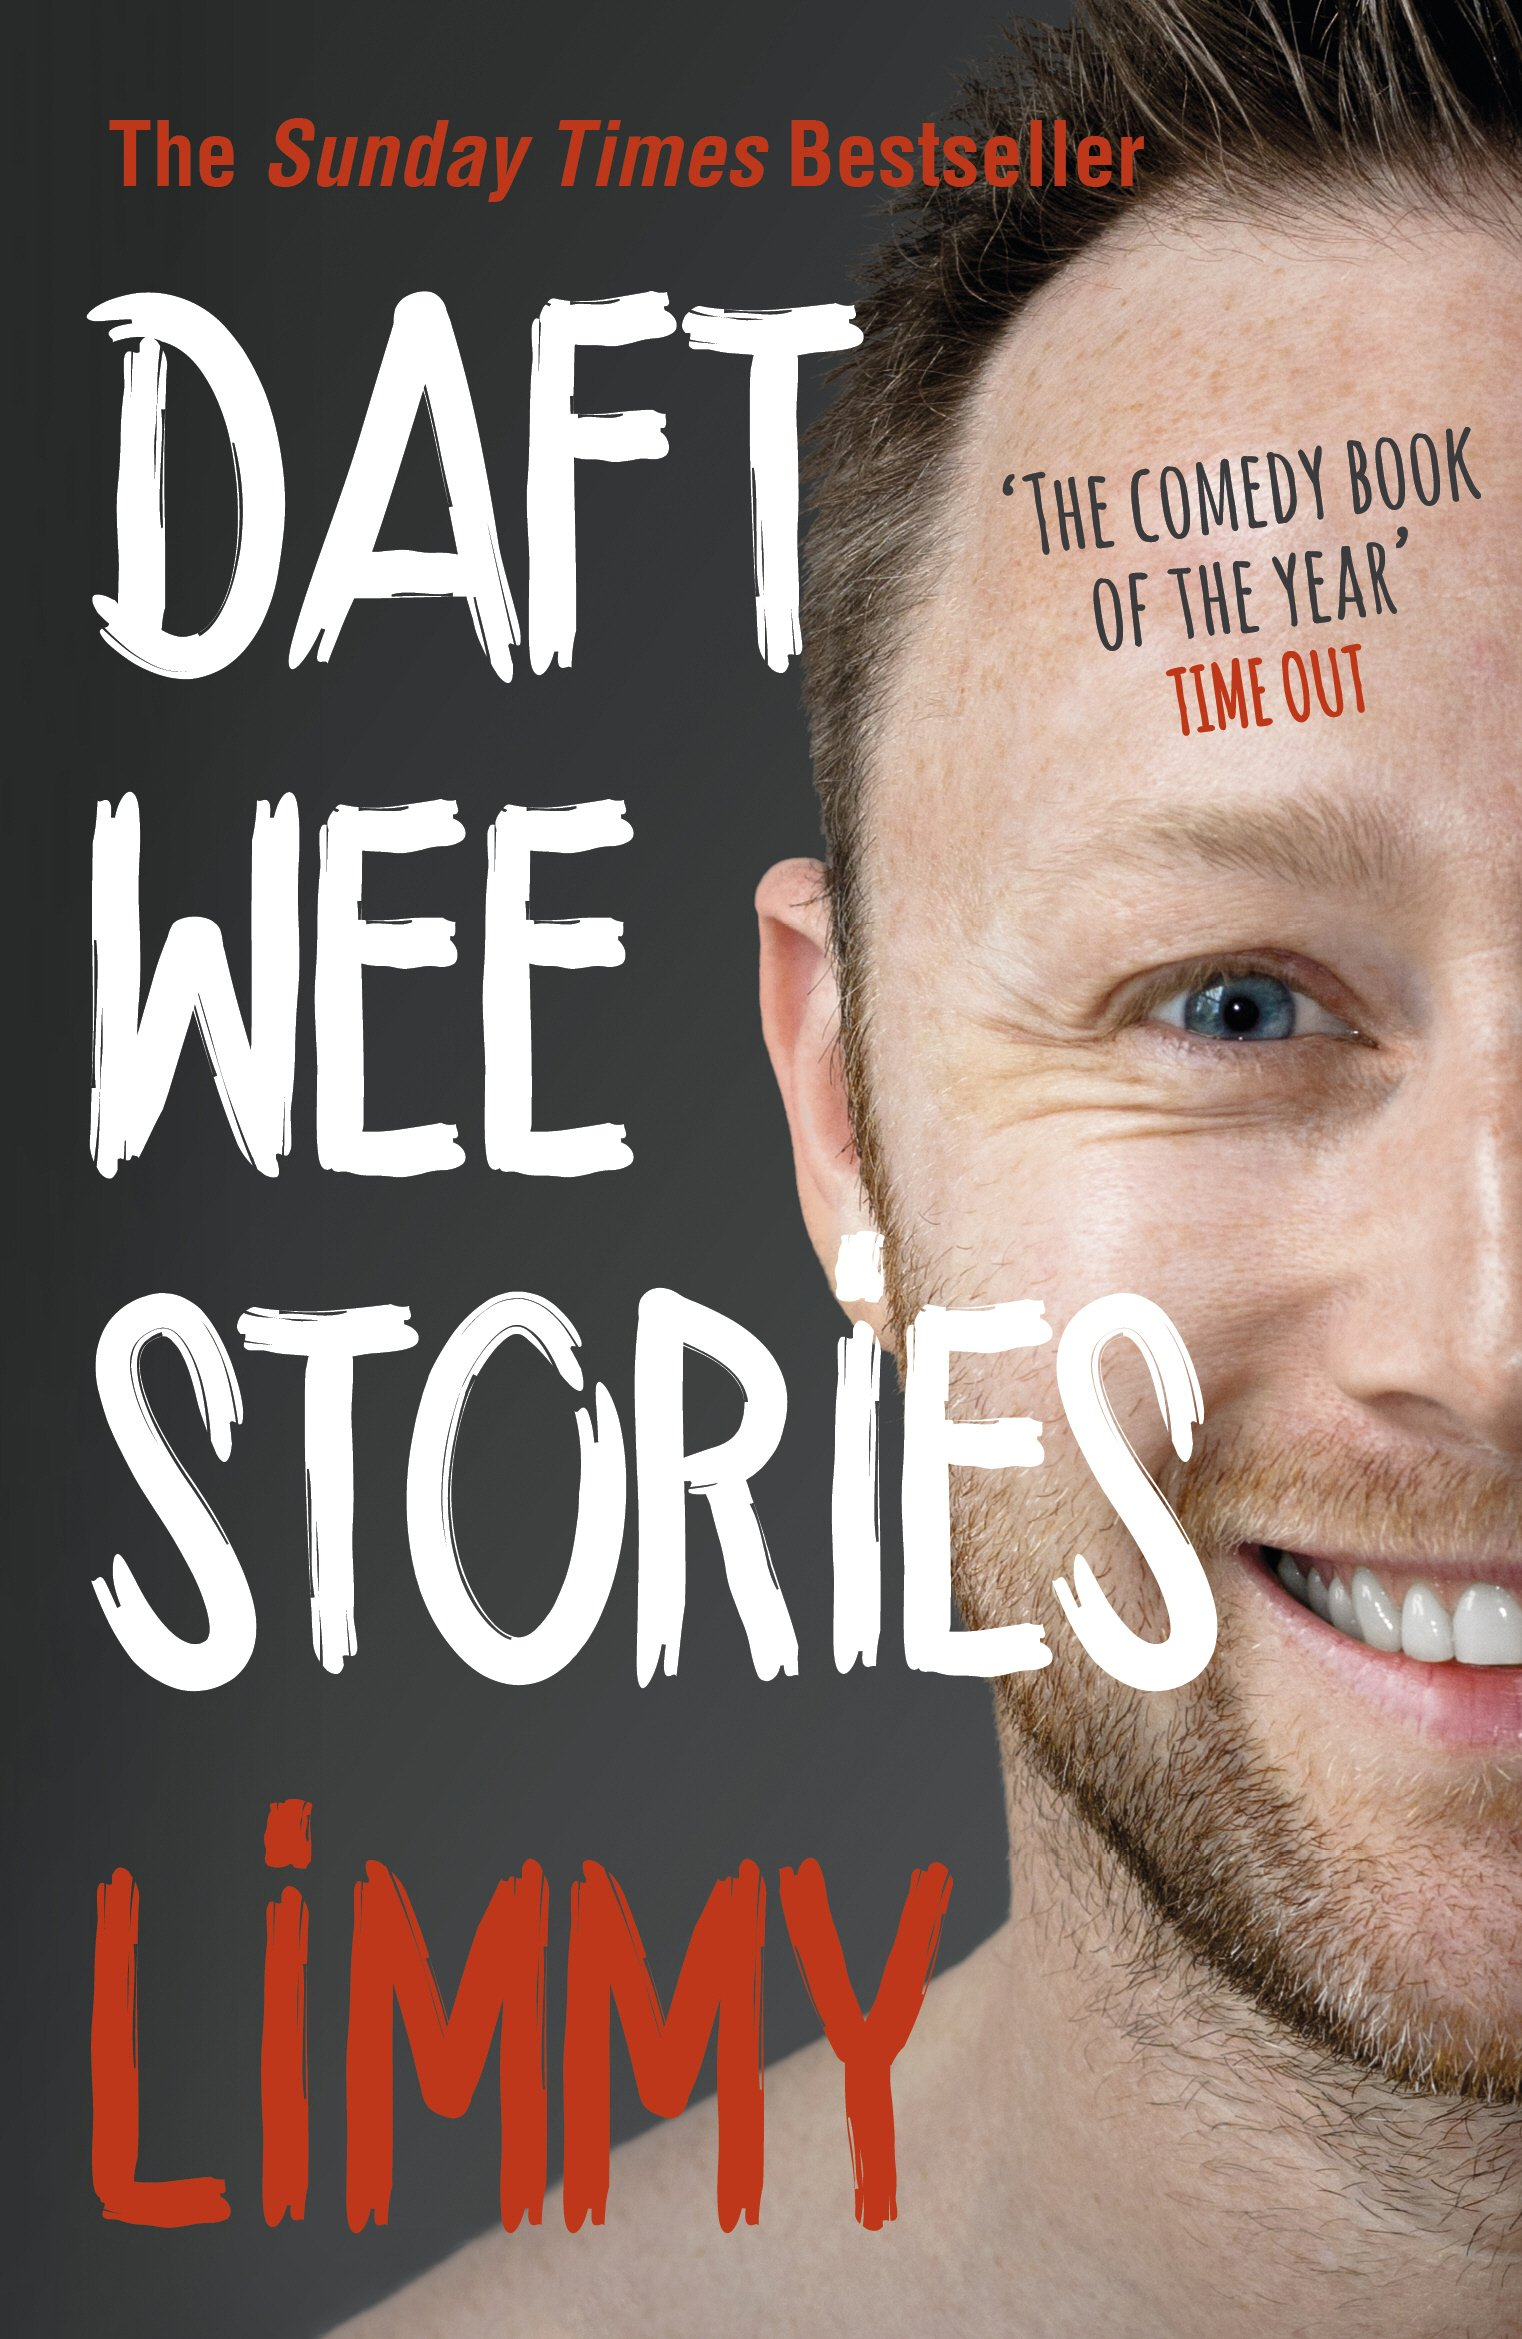 Daft Wee Stories: Amazon.co.uk: Limmy: 9781784750275: Books